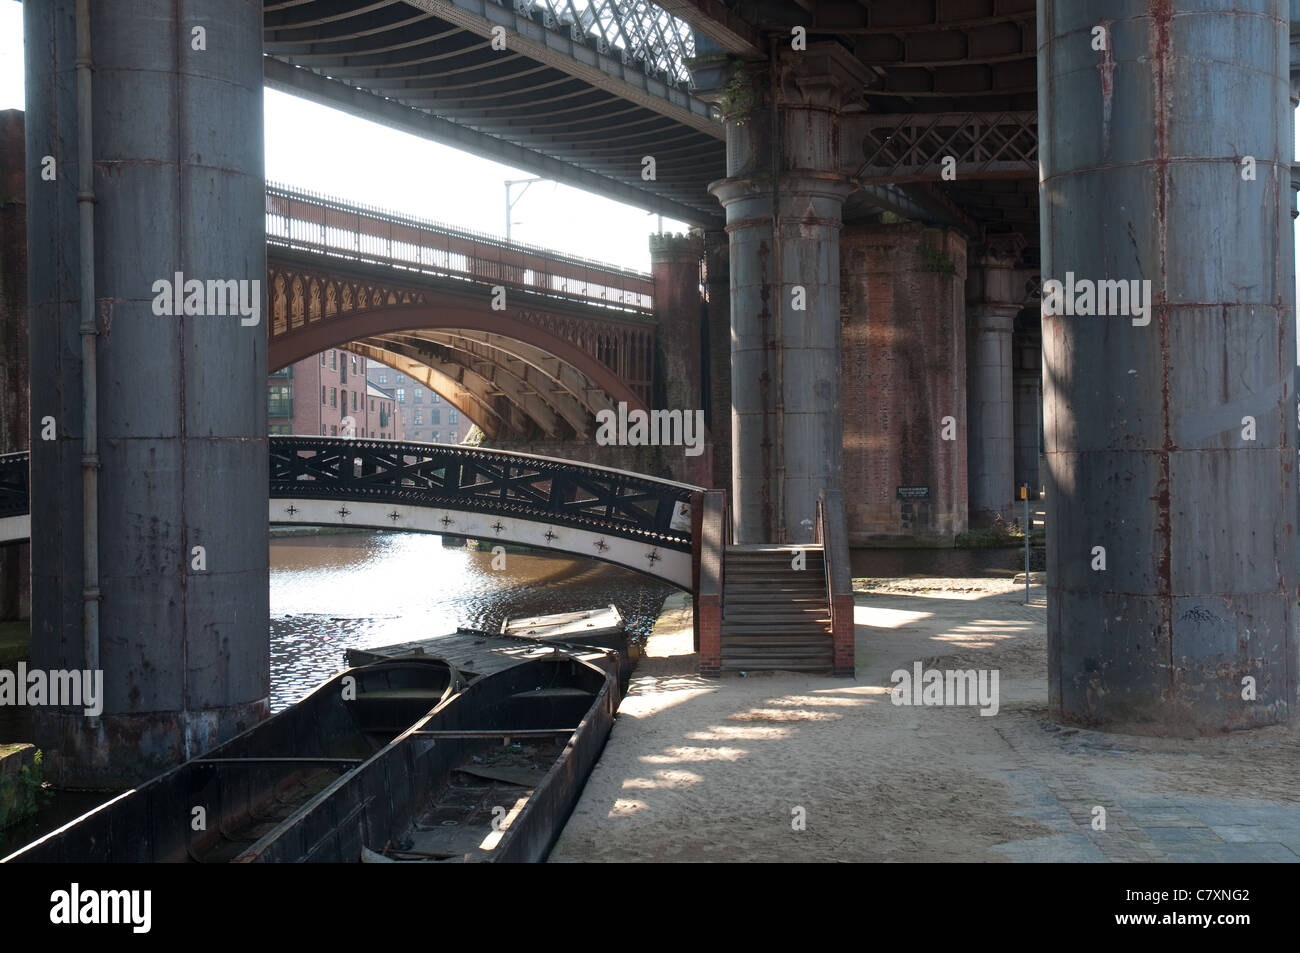 Industrial heritage, bridges over the canal system in the Castlefield district of Manchester,UK. - Stock Image